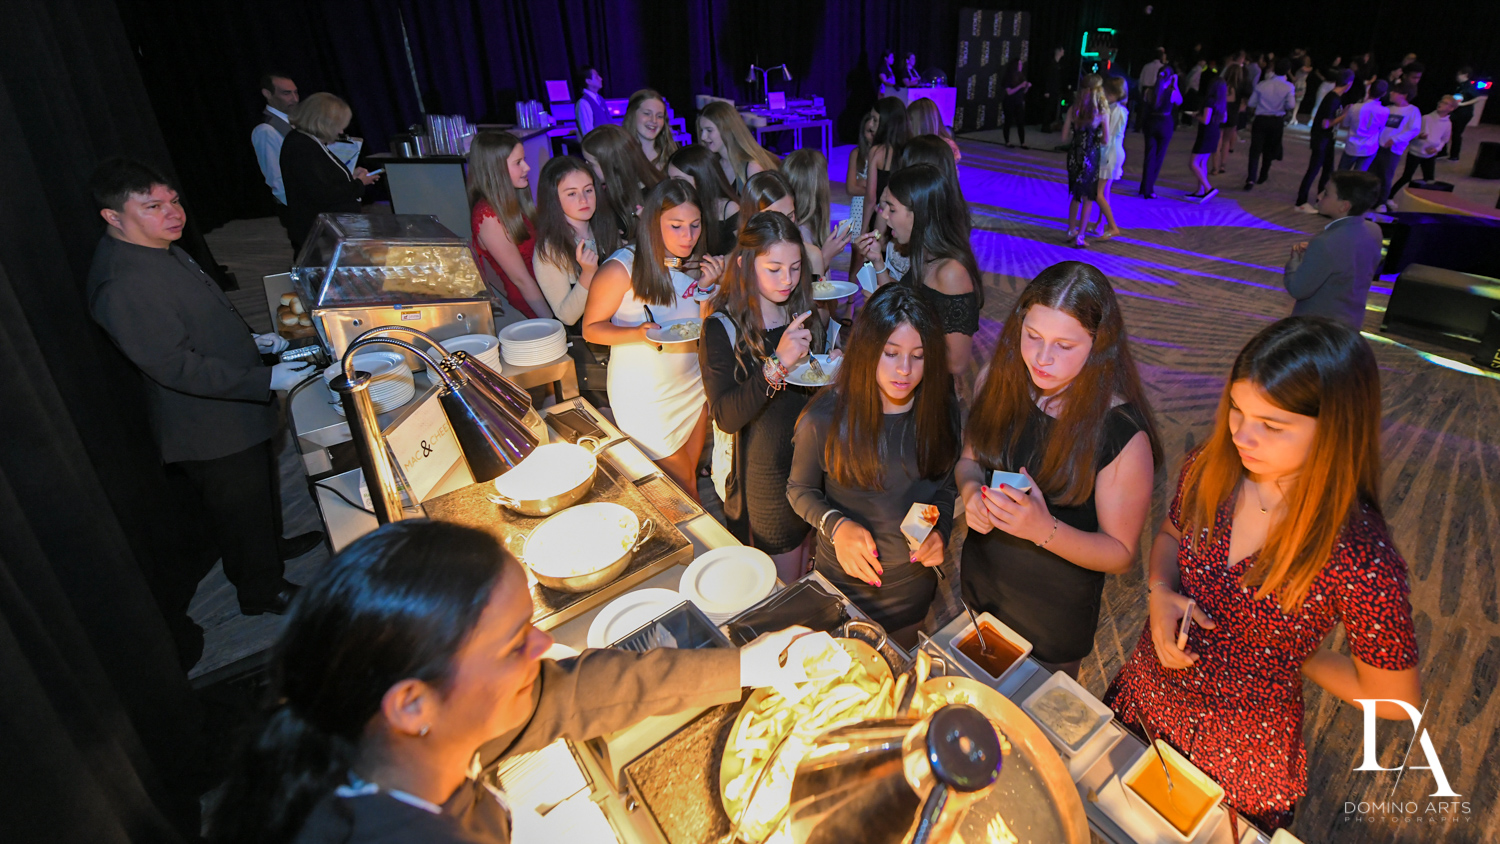 buffet catering at Designer invitations at Stylish Architectural B'Nai Mitzvah at the NEW JW Marriott Miami Turnberry Resort & Spa by Domino Arts Photography